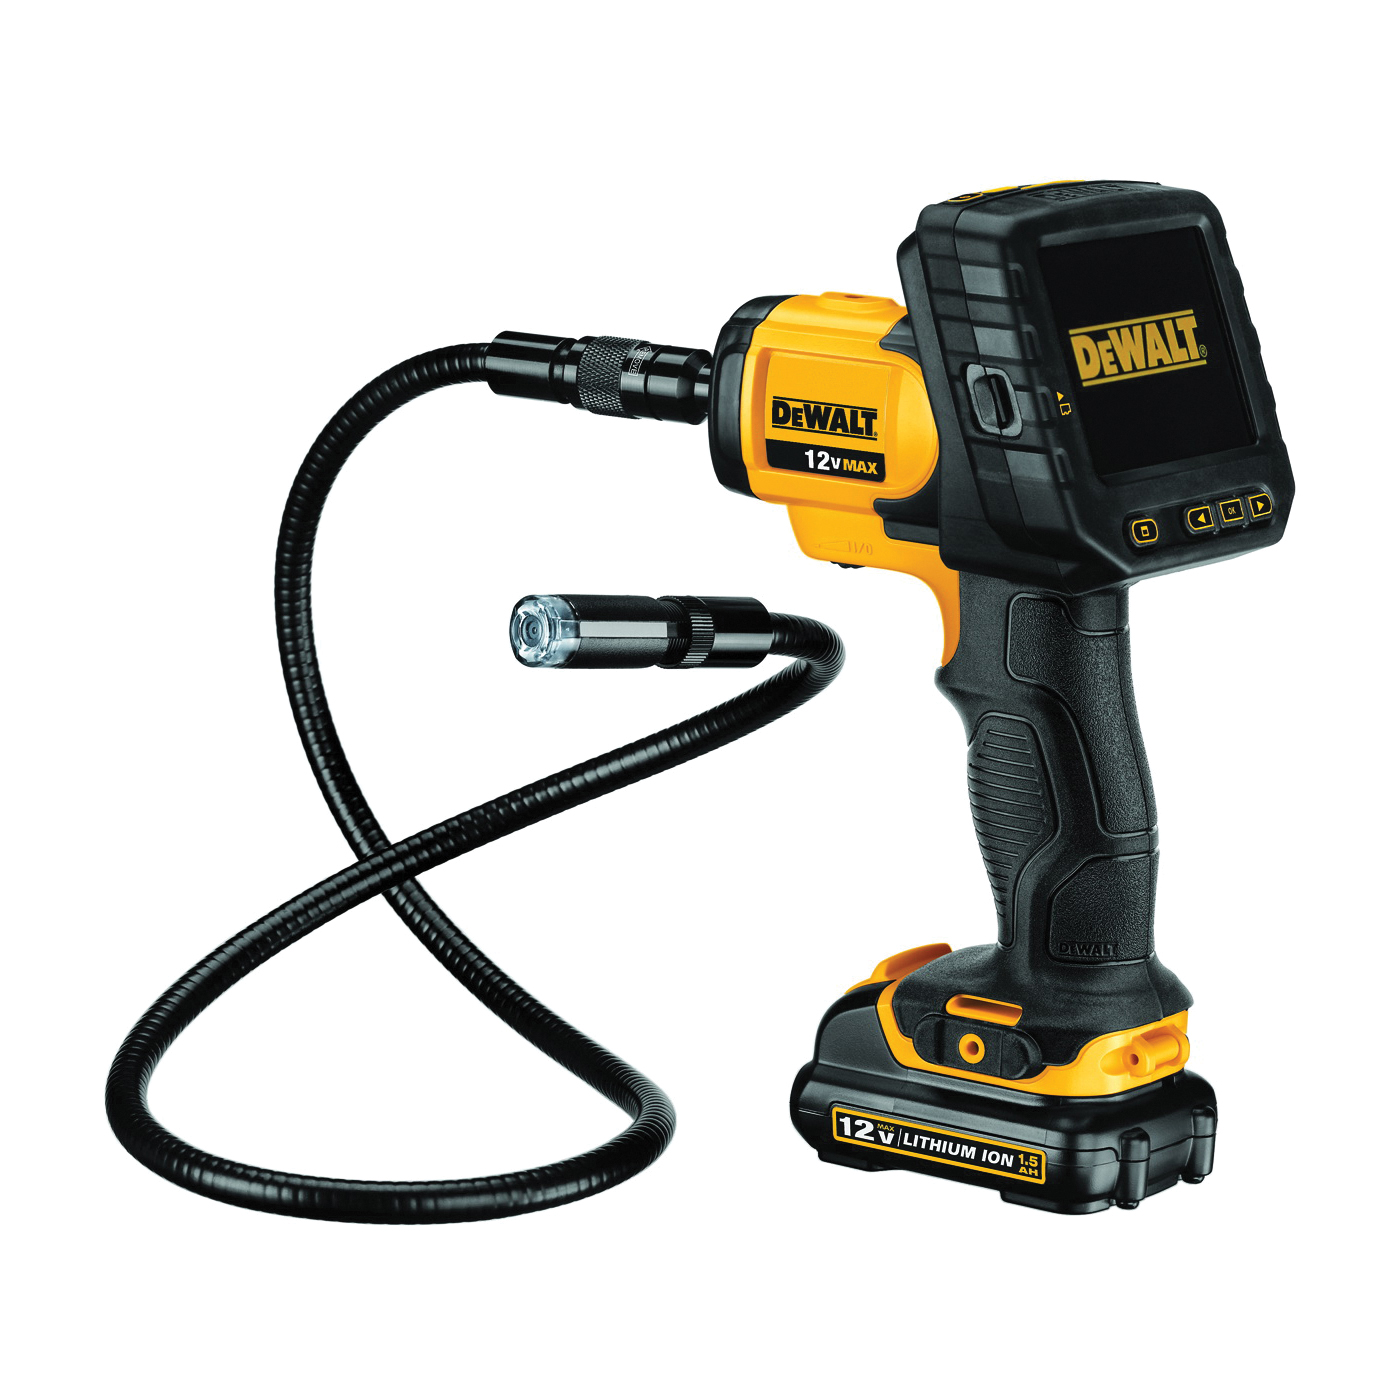 Picture of DeWALT DCT410S1 Cordless Inspection Camera with Wireless Screen Kit, Kit, 12 V Battery, 3-1/2 in Display